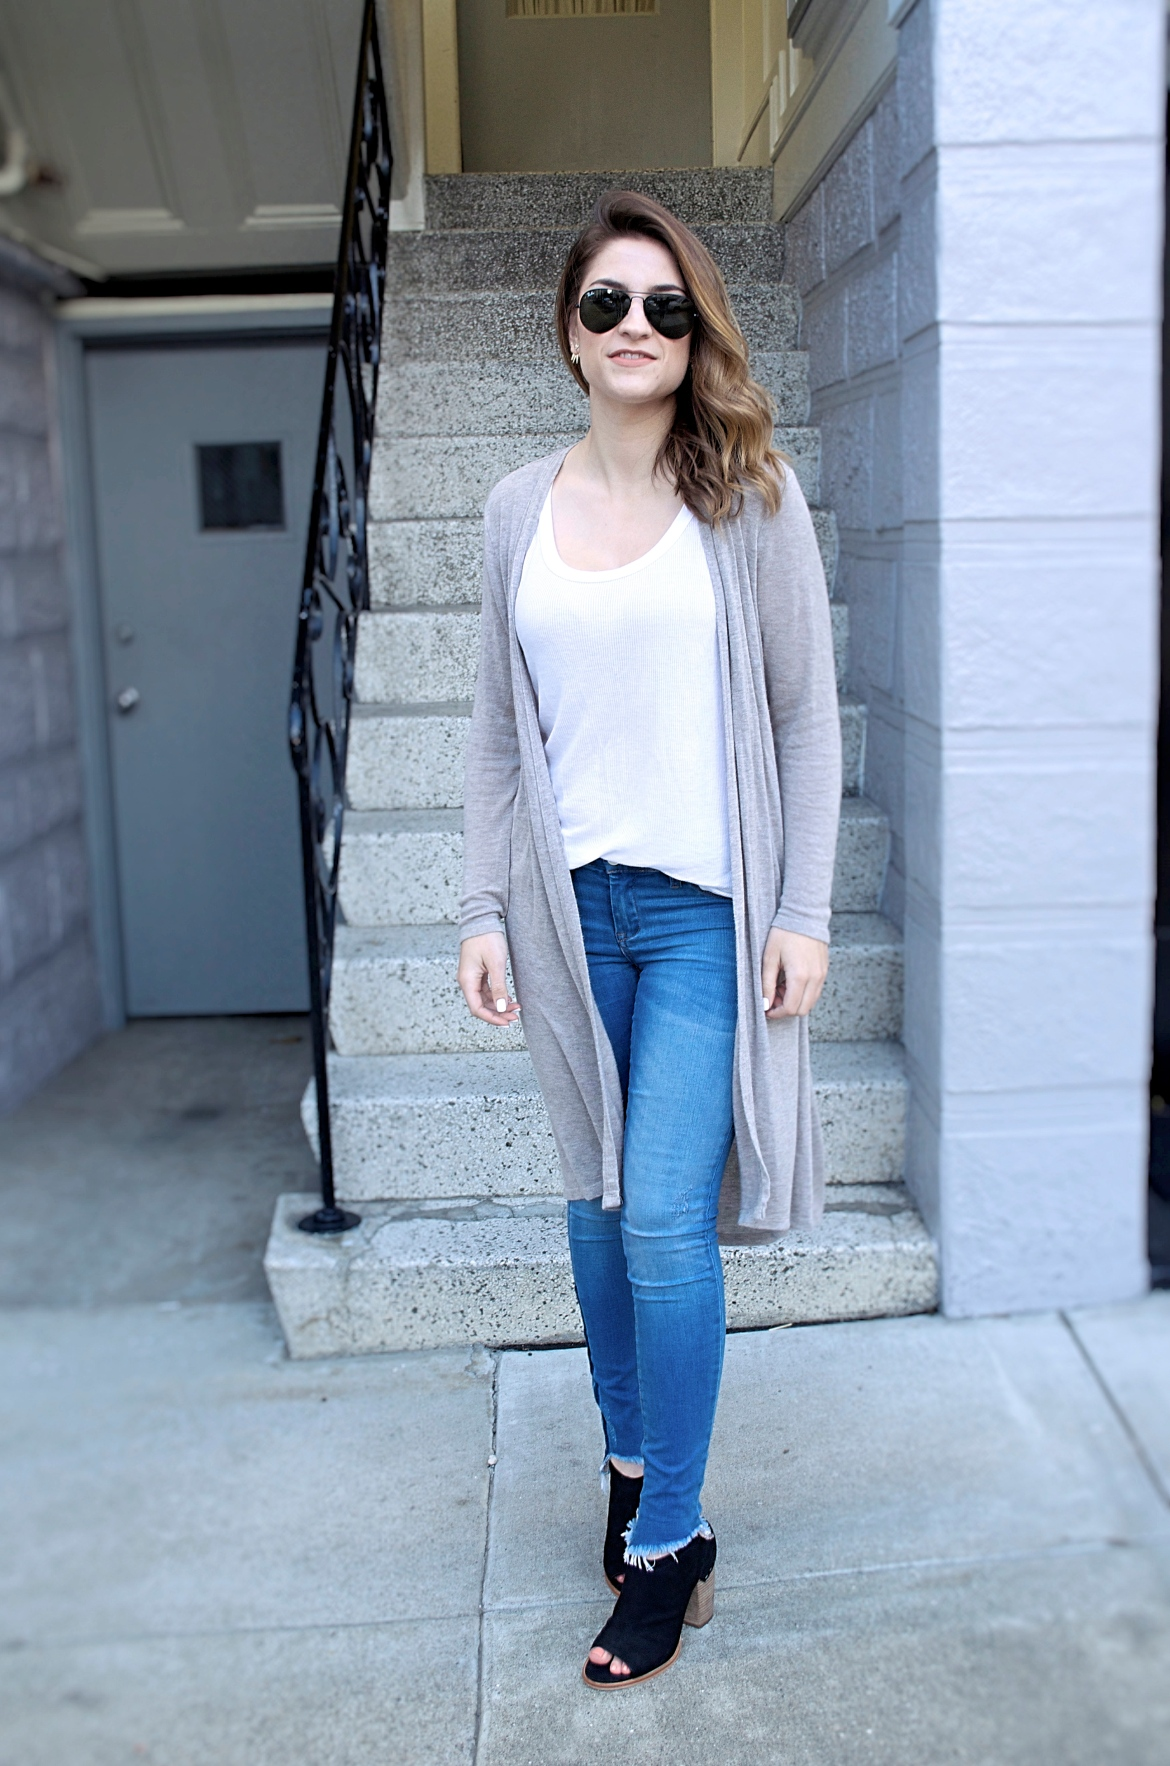 HOW TO STYLE A DUSTER CARDIGAN – Blushing Dahlia